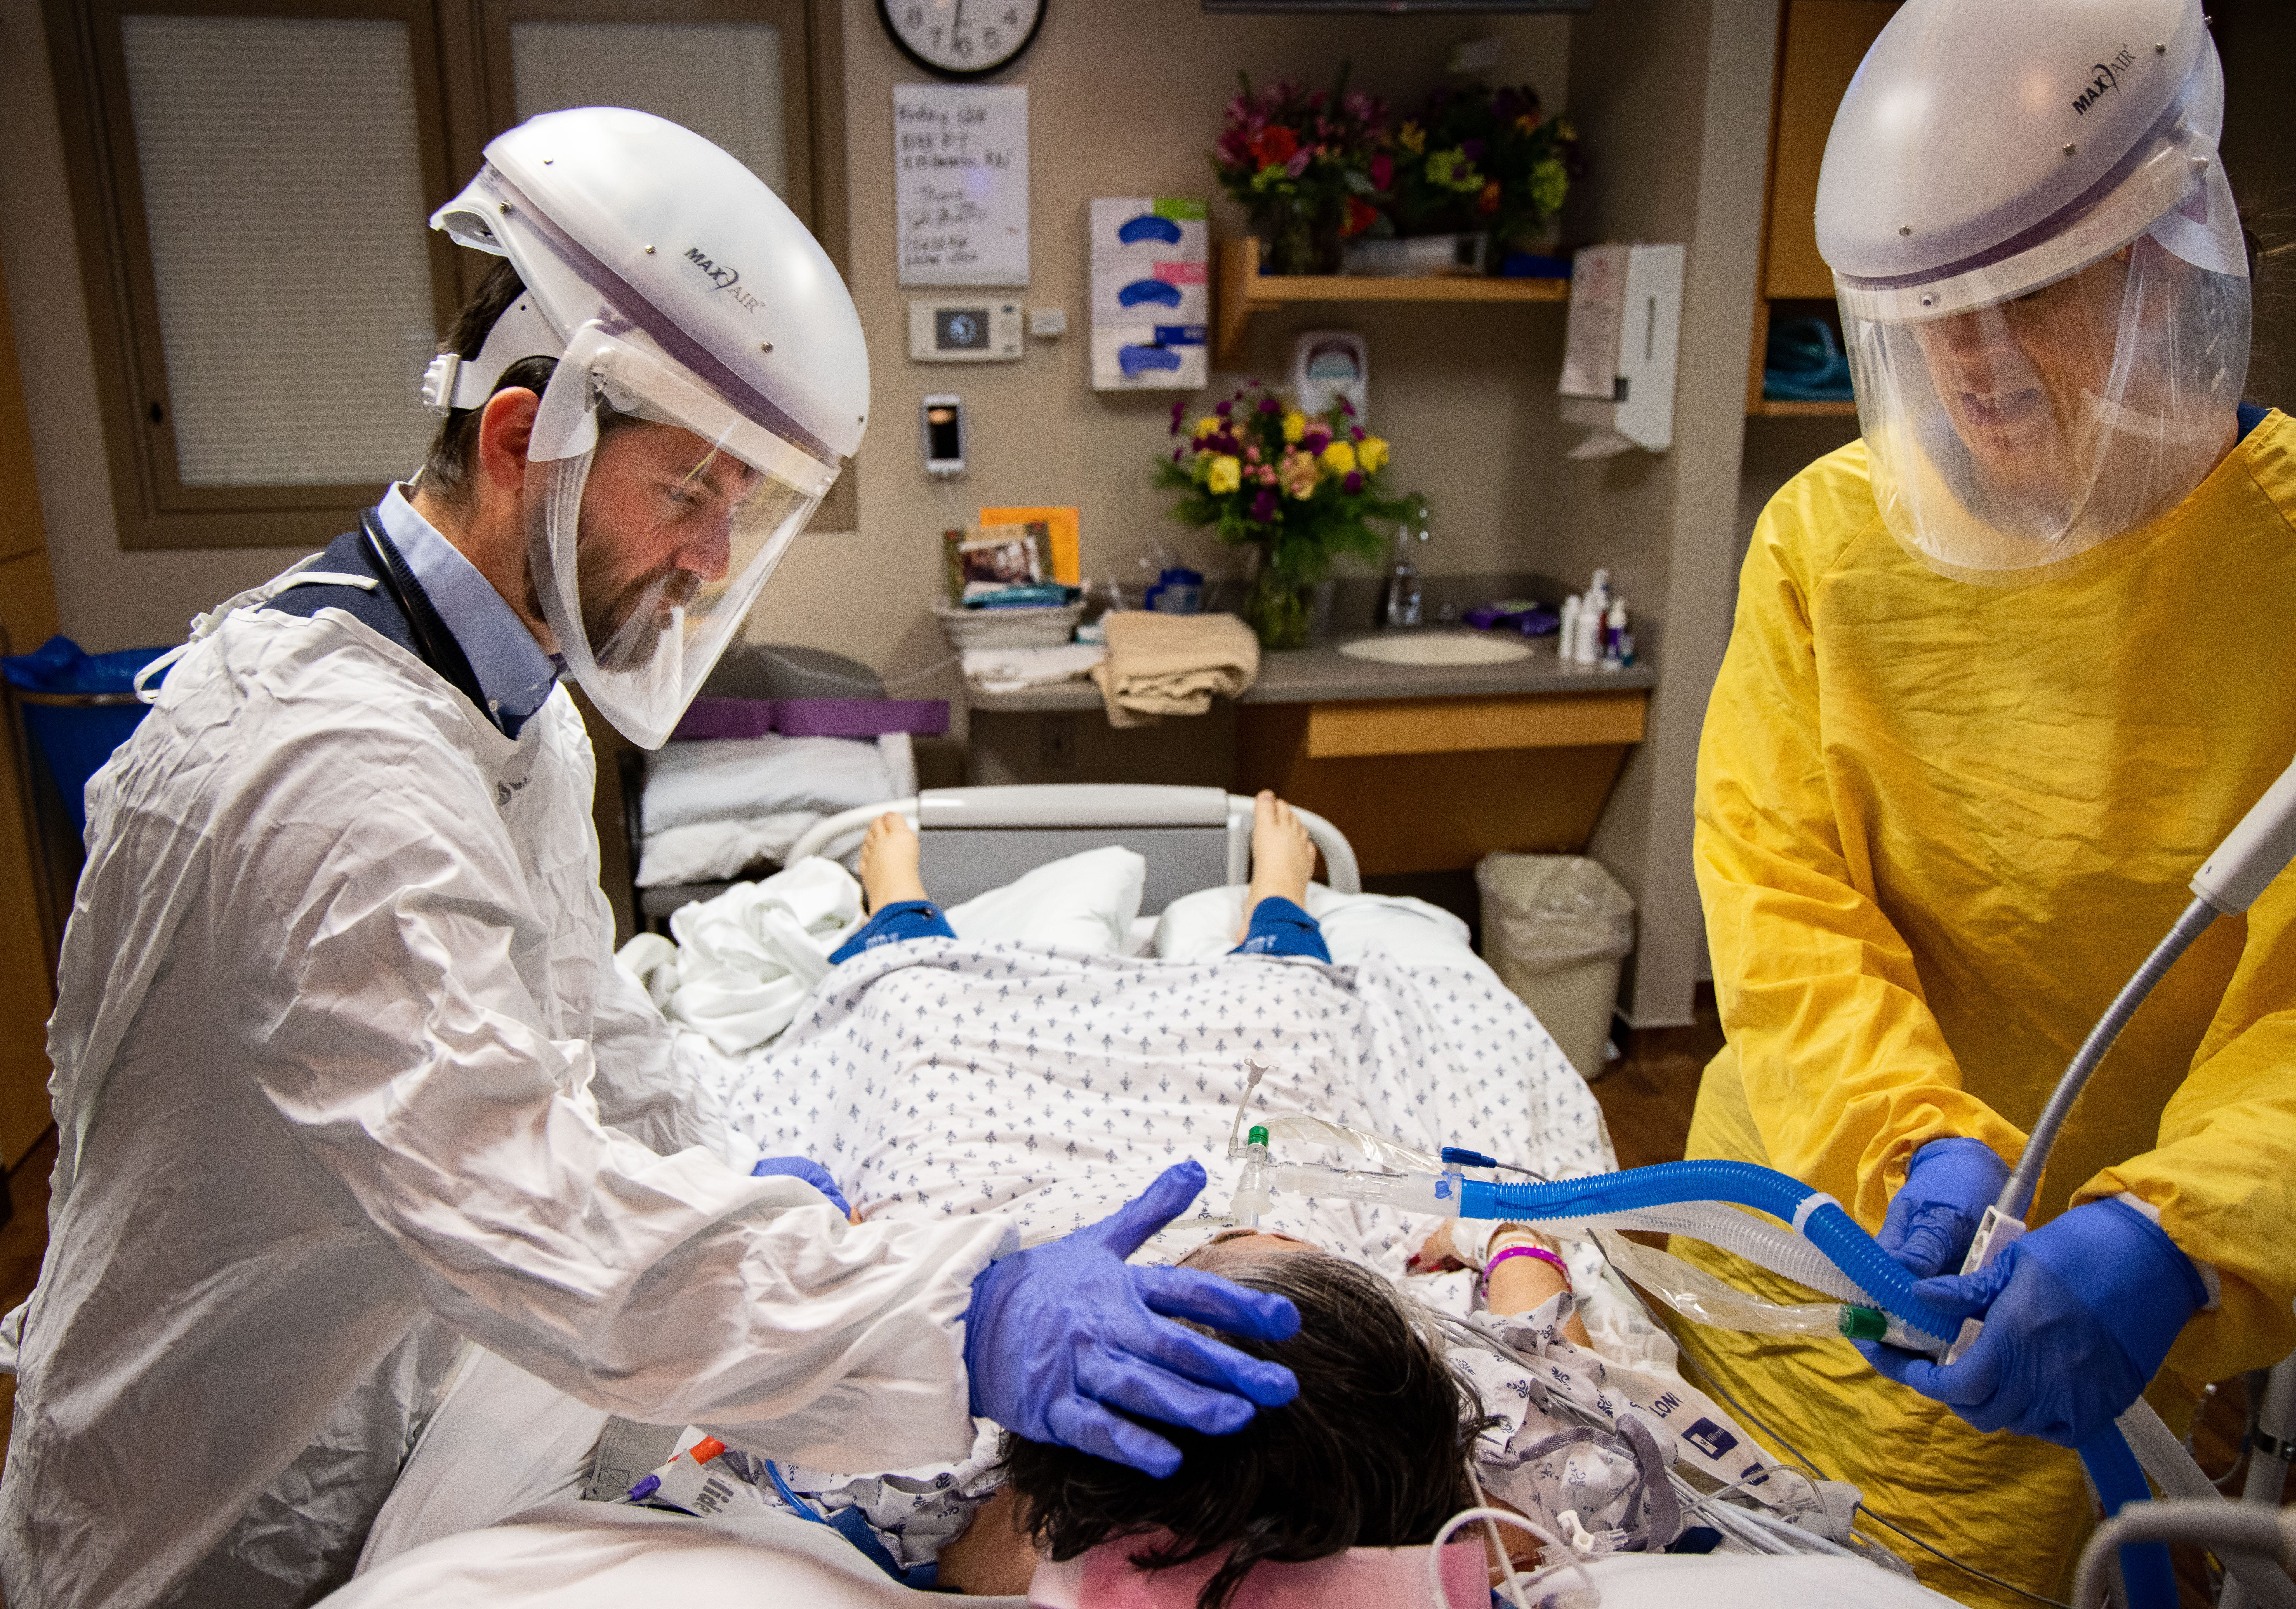 Infectious disease specialist Dr. Dan Fulton, left, checks on a COVID-19 patient in the ICU at Mary Greeley Medical Center in Ames on Dec. 16, 2020.